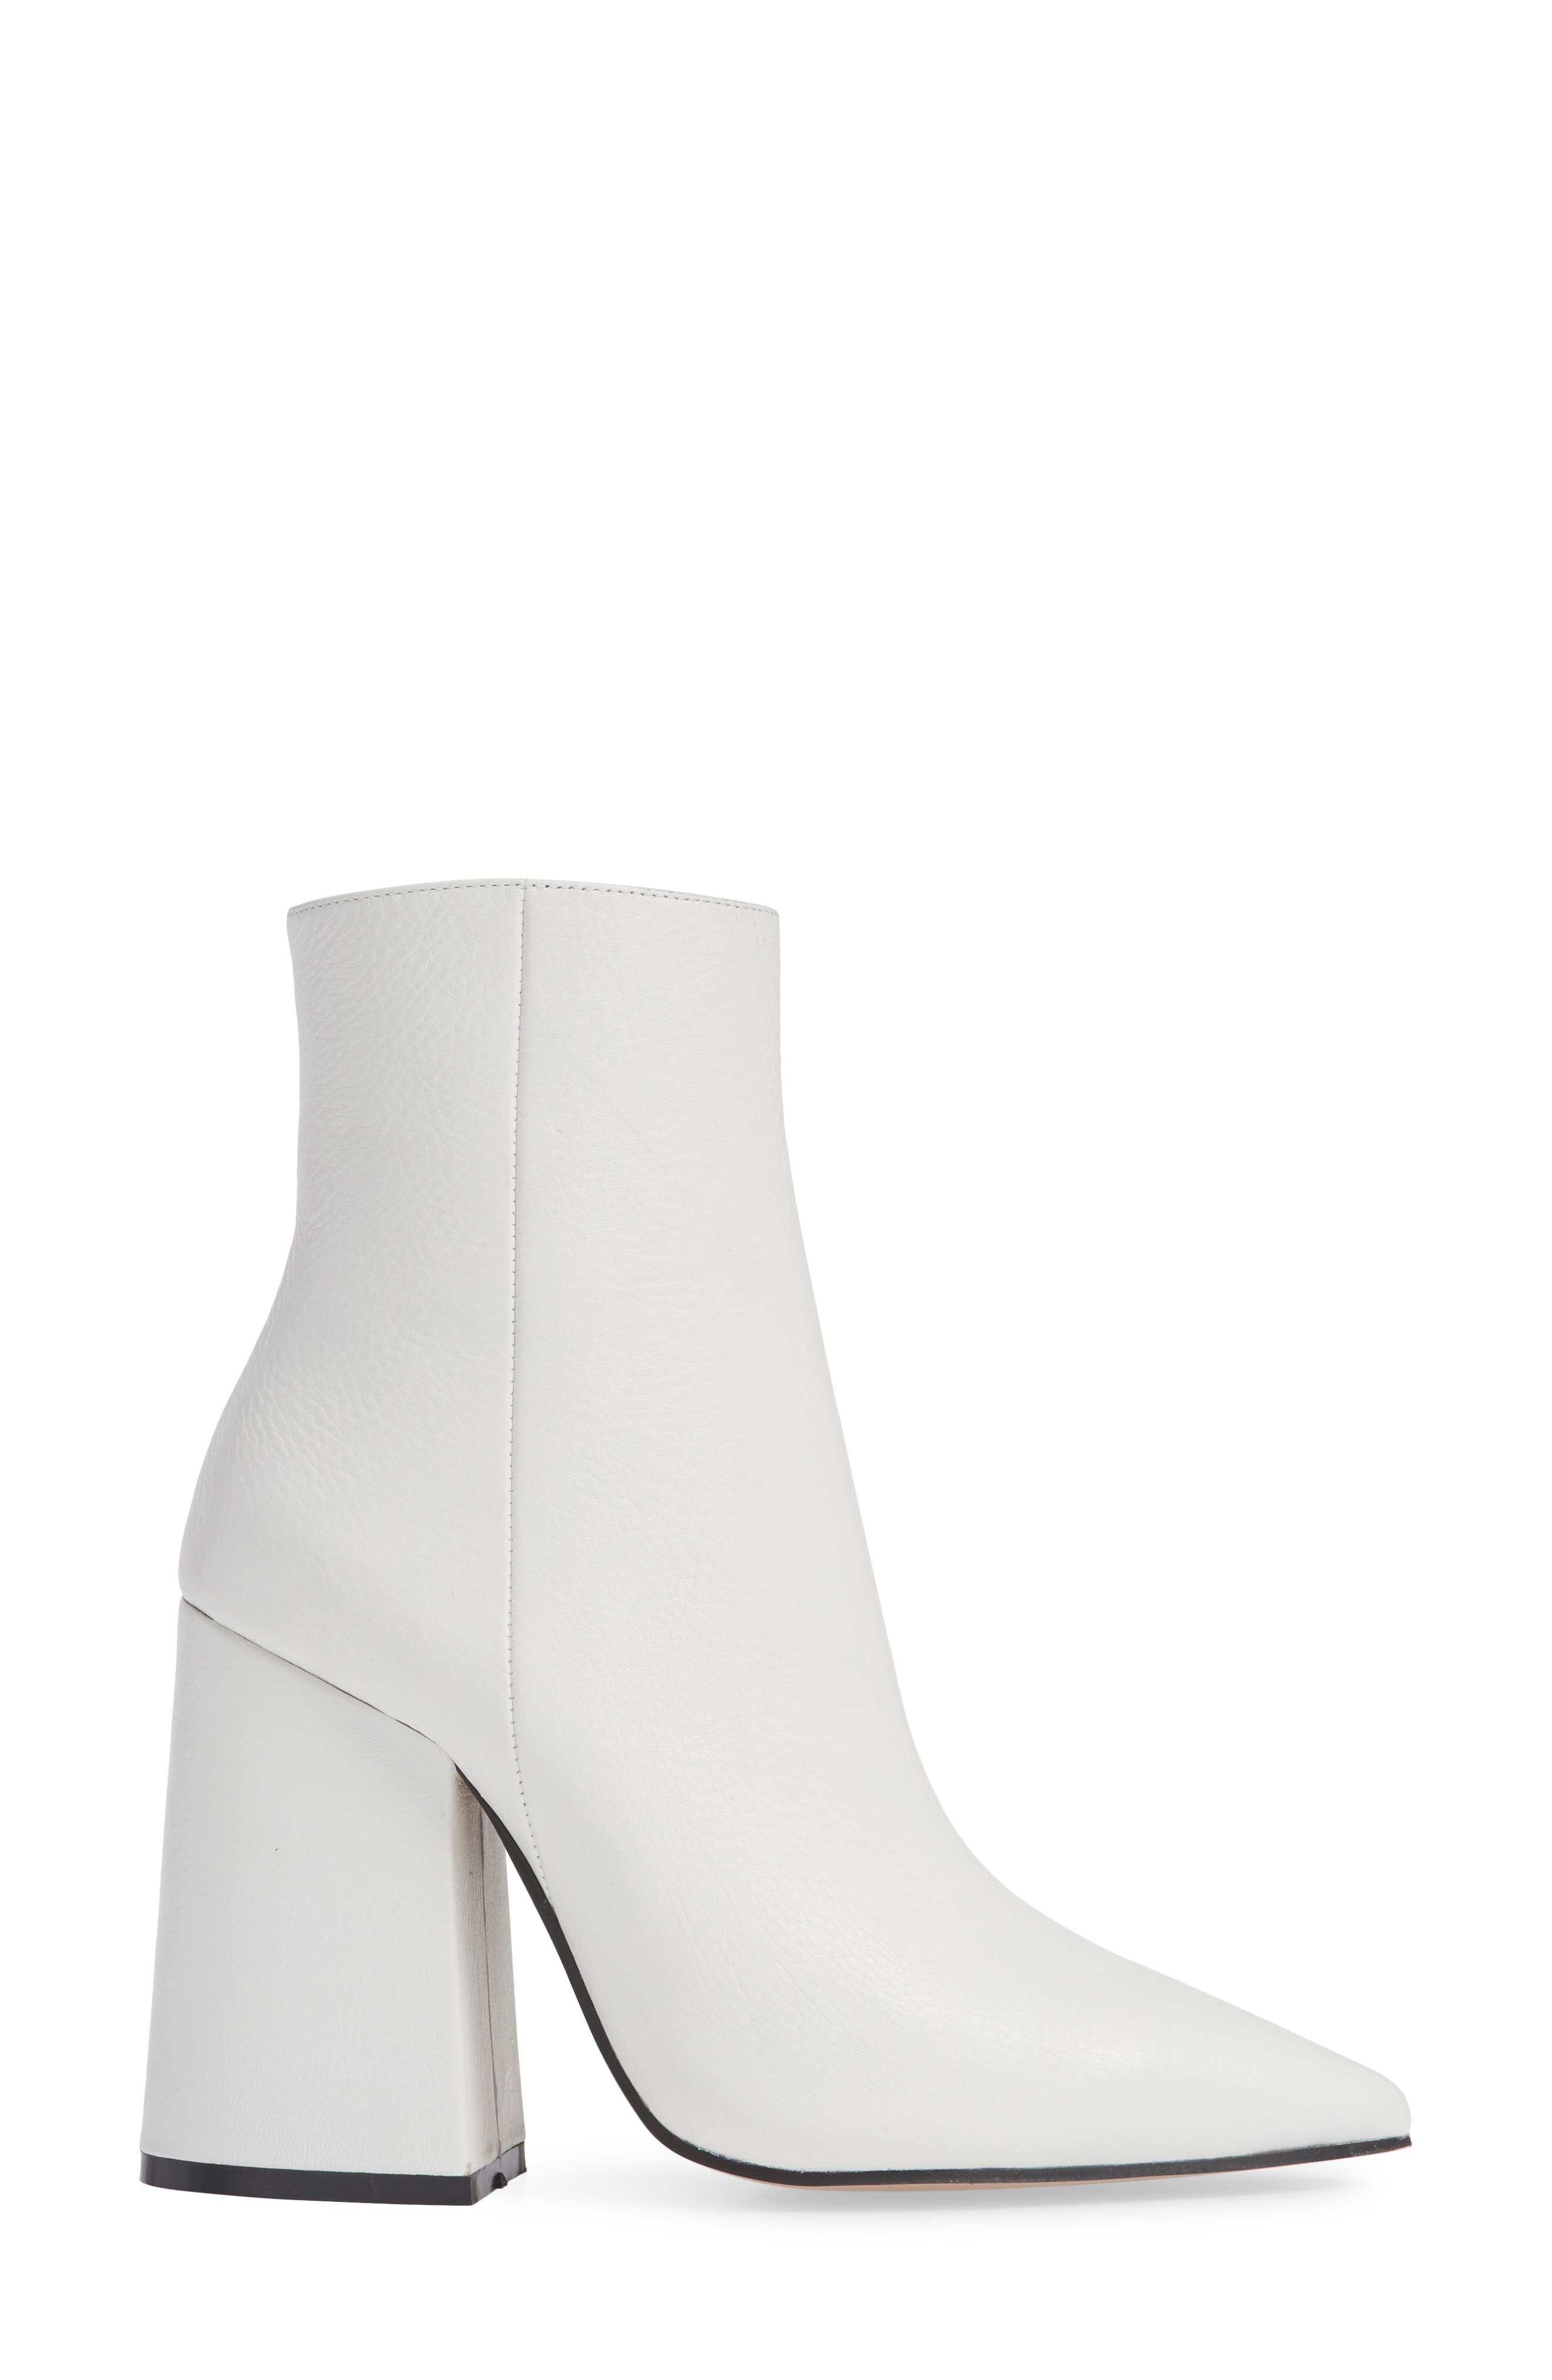 Ahara Bootie,                             Alternate thumbnail 3, color,                             WHITE LEATHER